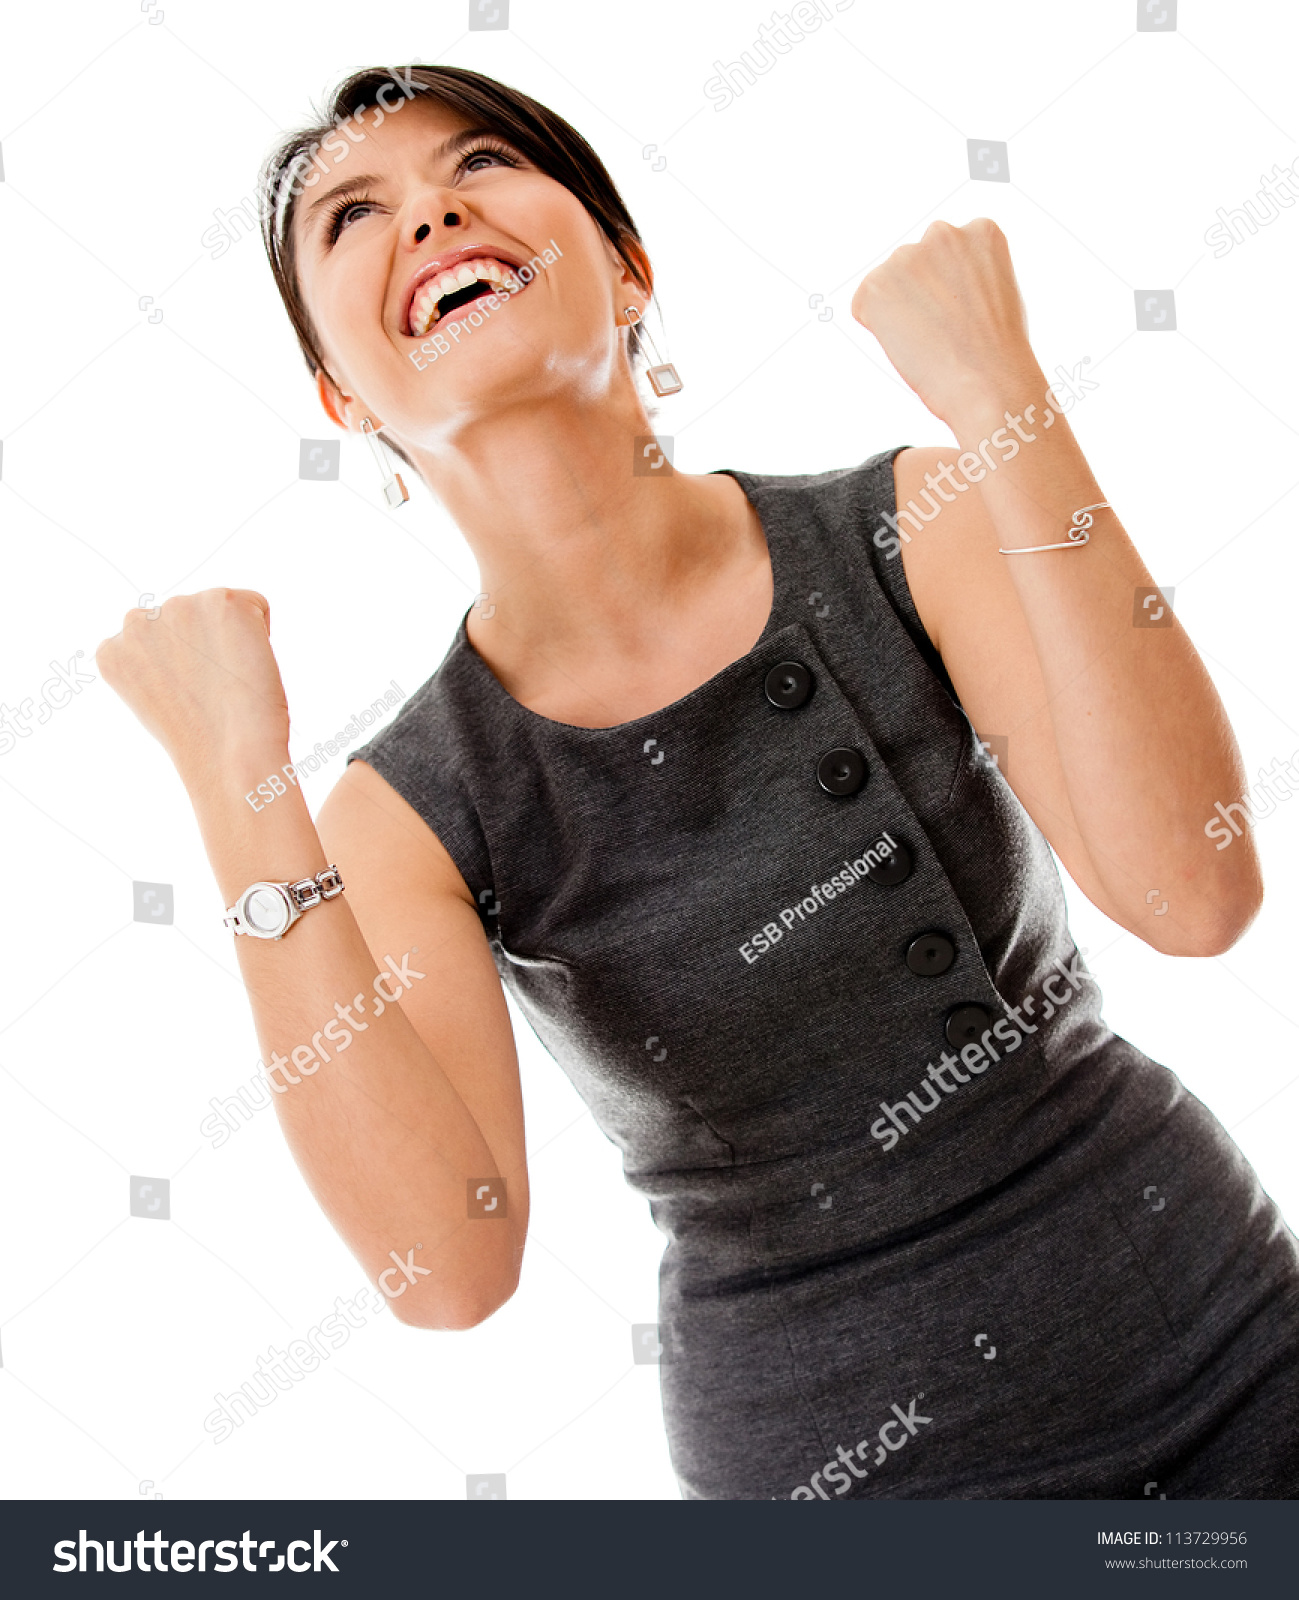 successful business w looking very excited stock photo successful business w looking very excited isolated over a white background